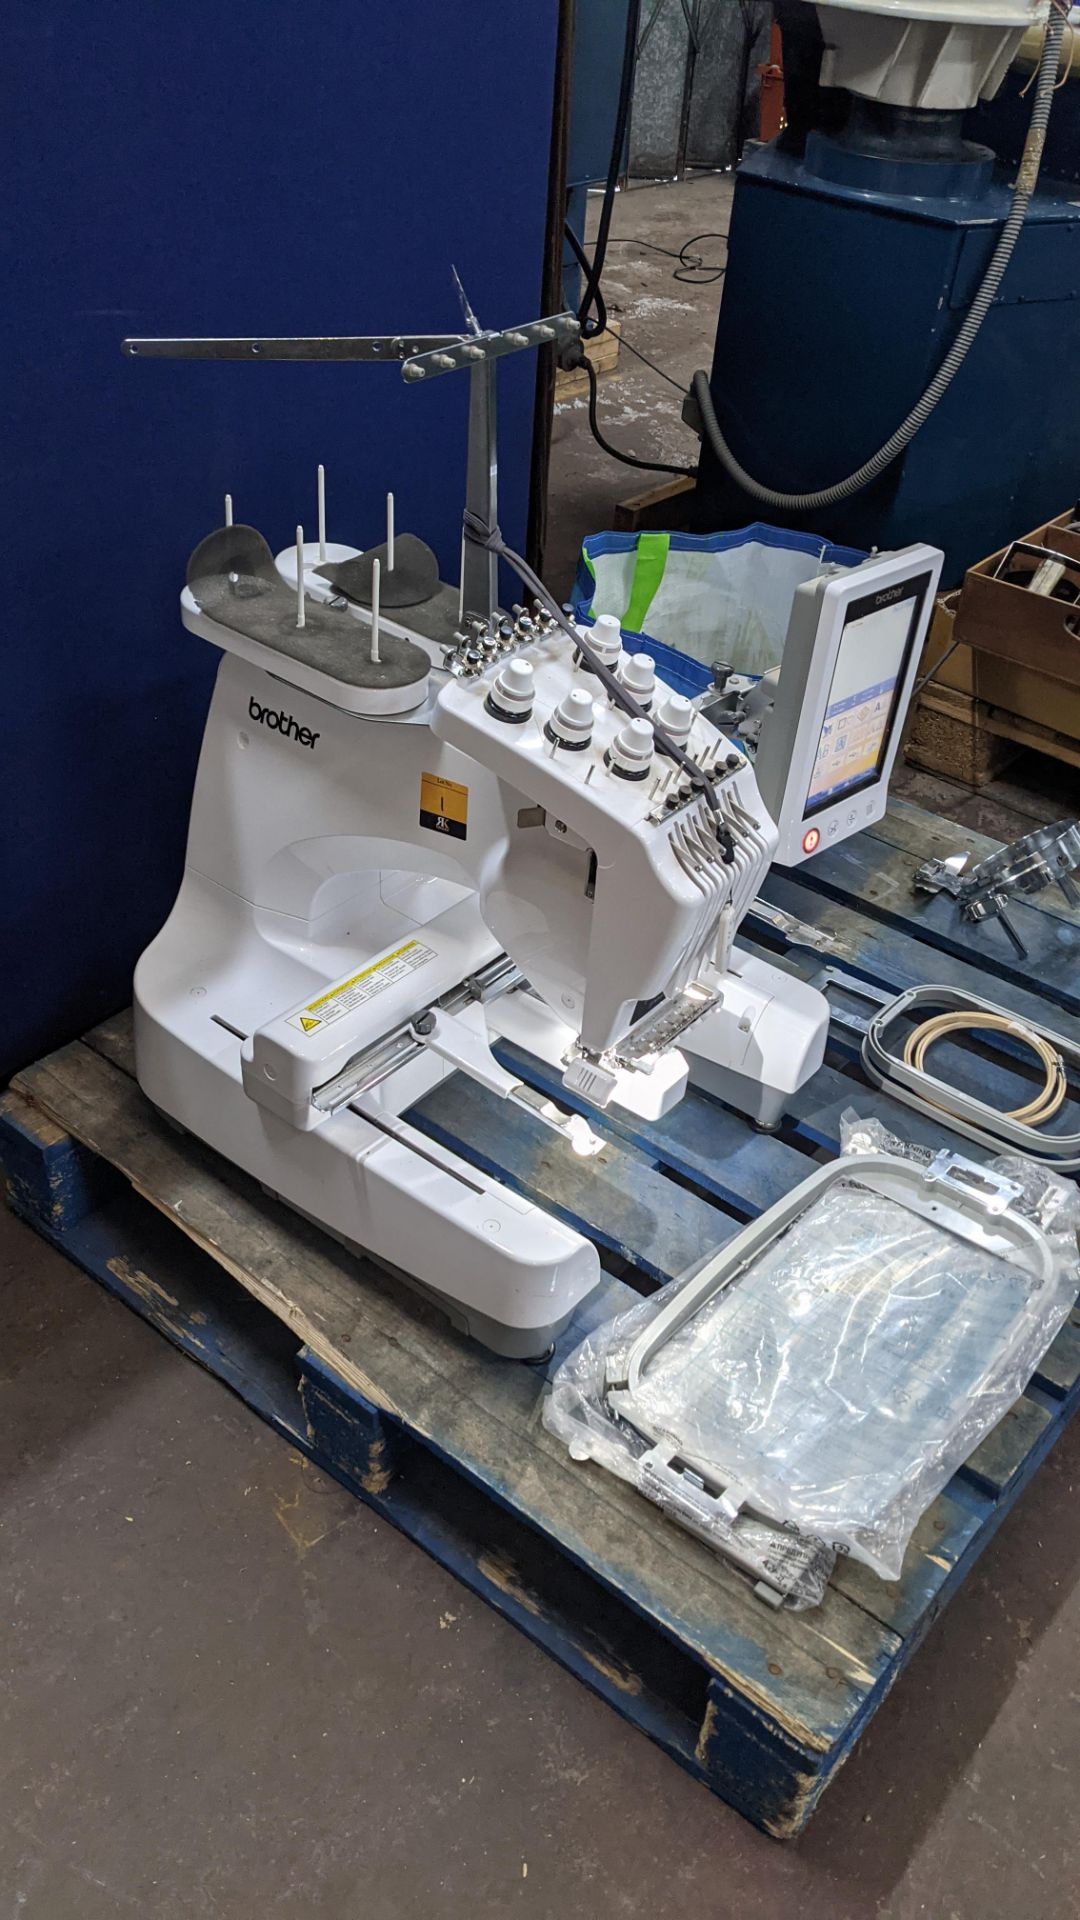 Brother PR655 single head 6 needle embroidery machine, serial no. E72364-D6B113501 incorporating lar - Image 8 of 25